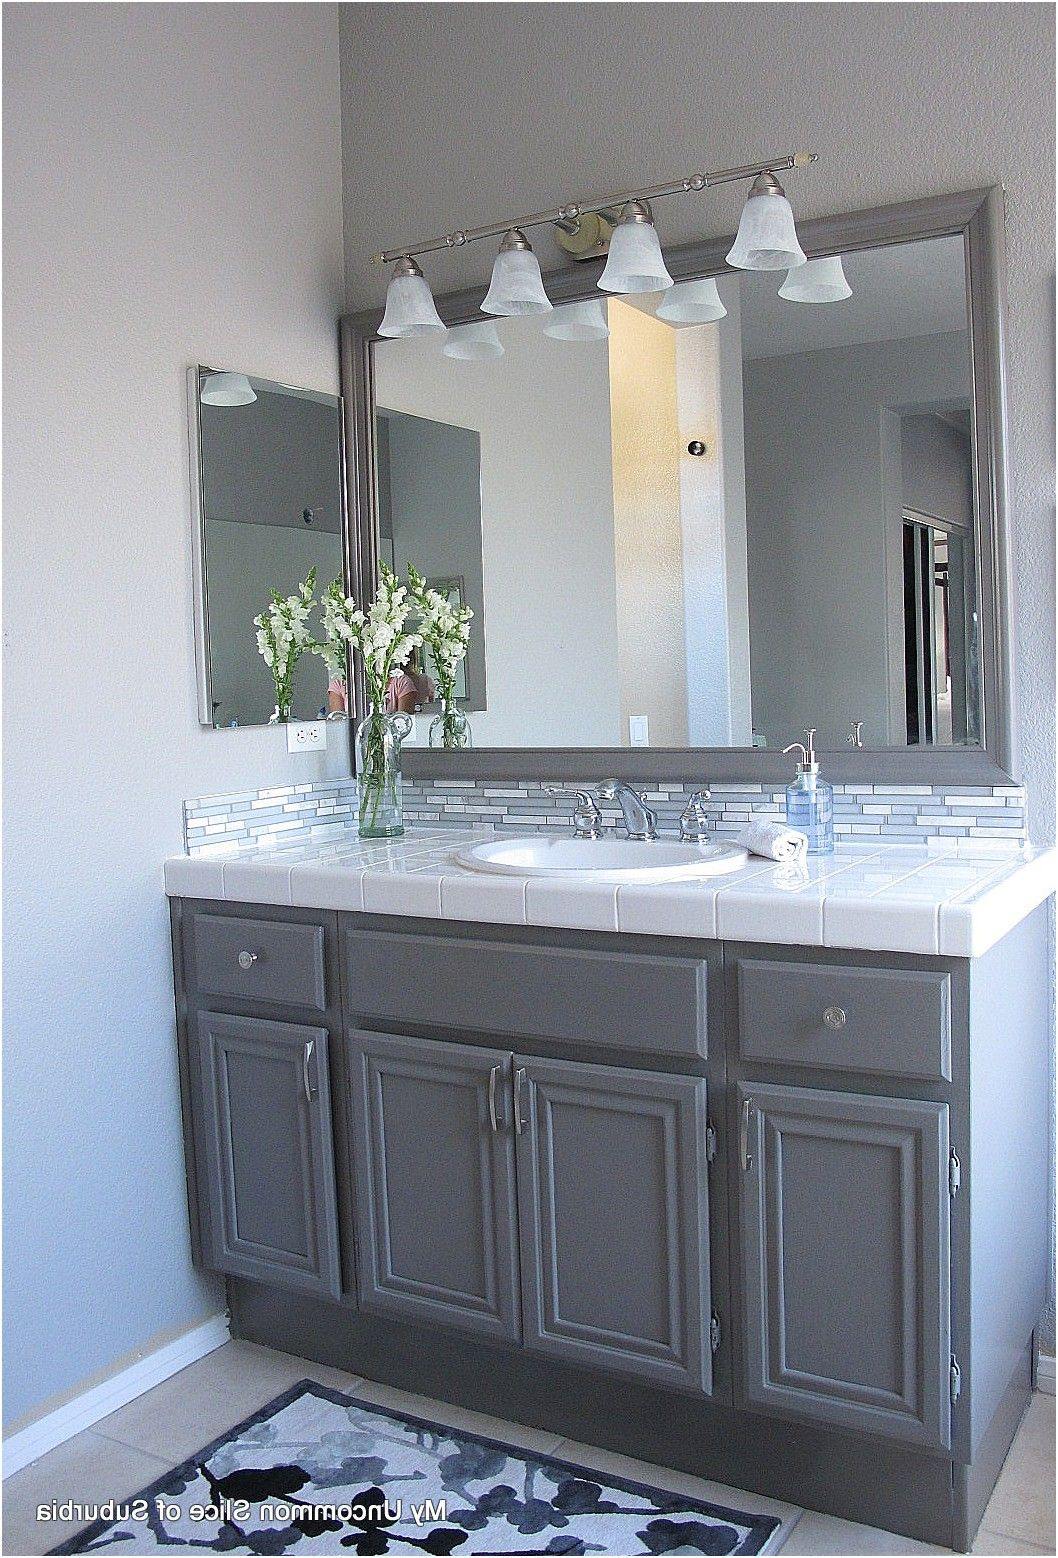 diy distressed bathroom vanity%0A diy bathroom vanity tips organize stuff more neatly black pictures white  appliances kitchen paint oak cabinets feel